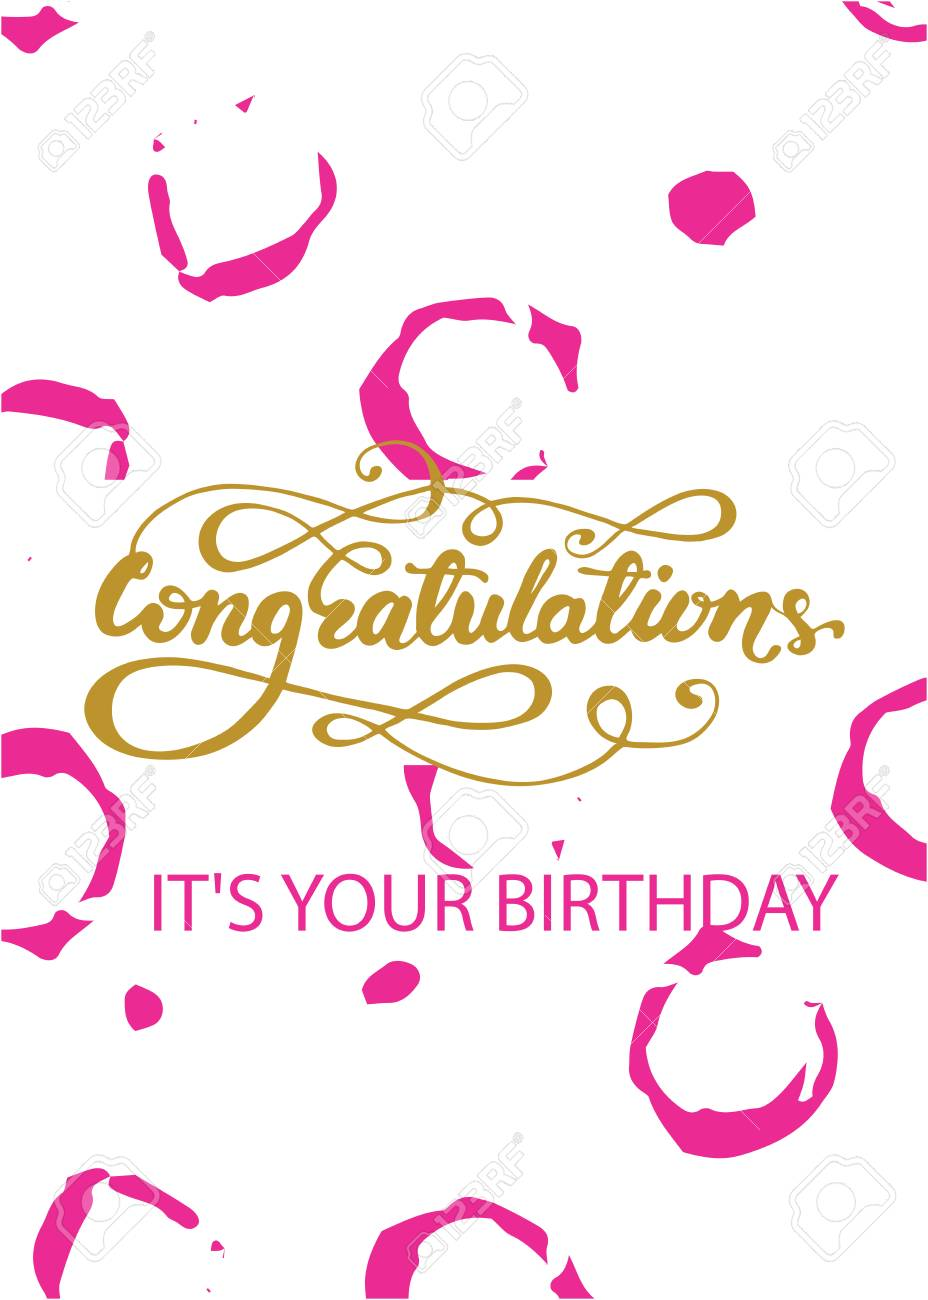 Birthday Greeting Card Design With Congratulations Its Your Typography Stock Vector